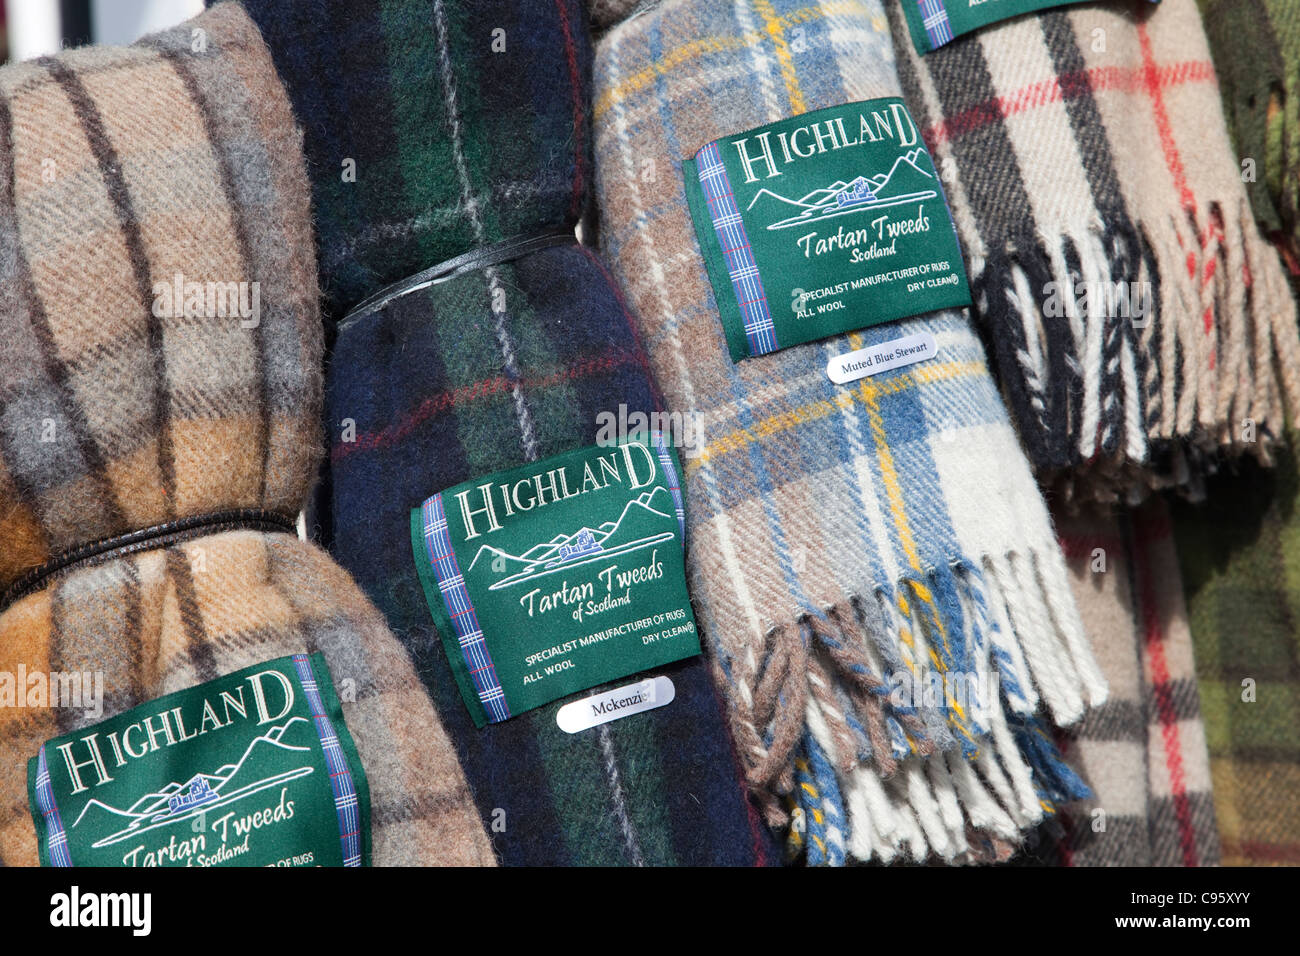 Scotland, Edinburgh, The Royal Mile, Souvenir Shop Scarf Display ...